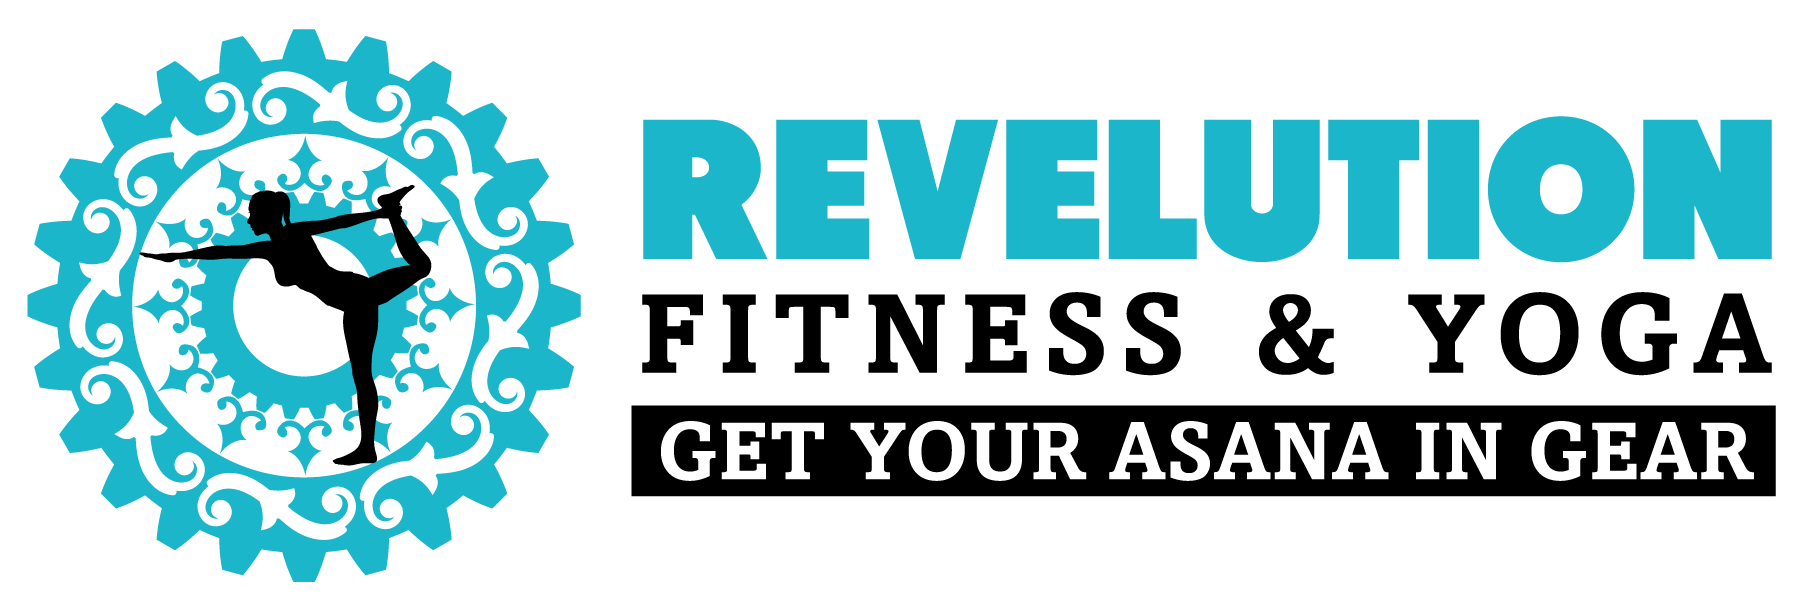 Revelution Fitness & Yoga